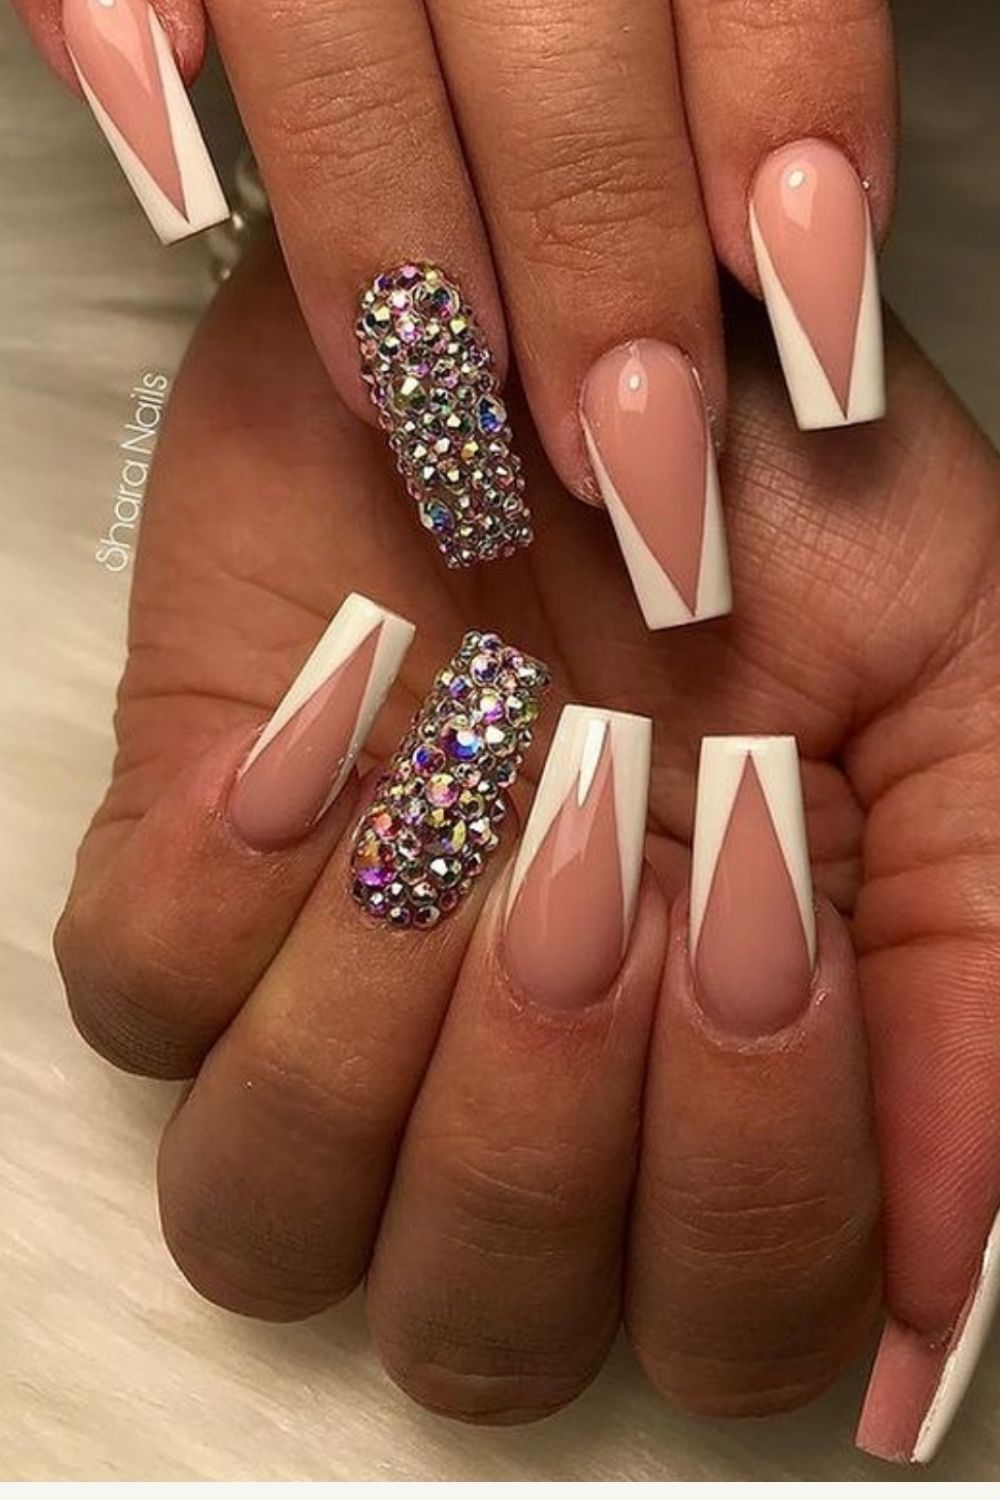 Acrylic Glitter coffin nails designs for Summer 2021!